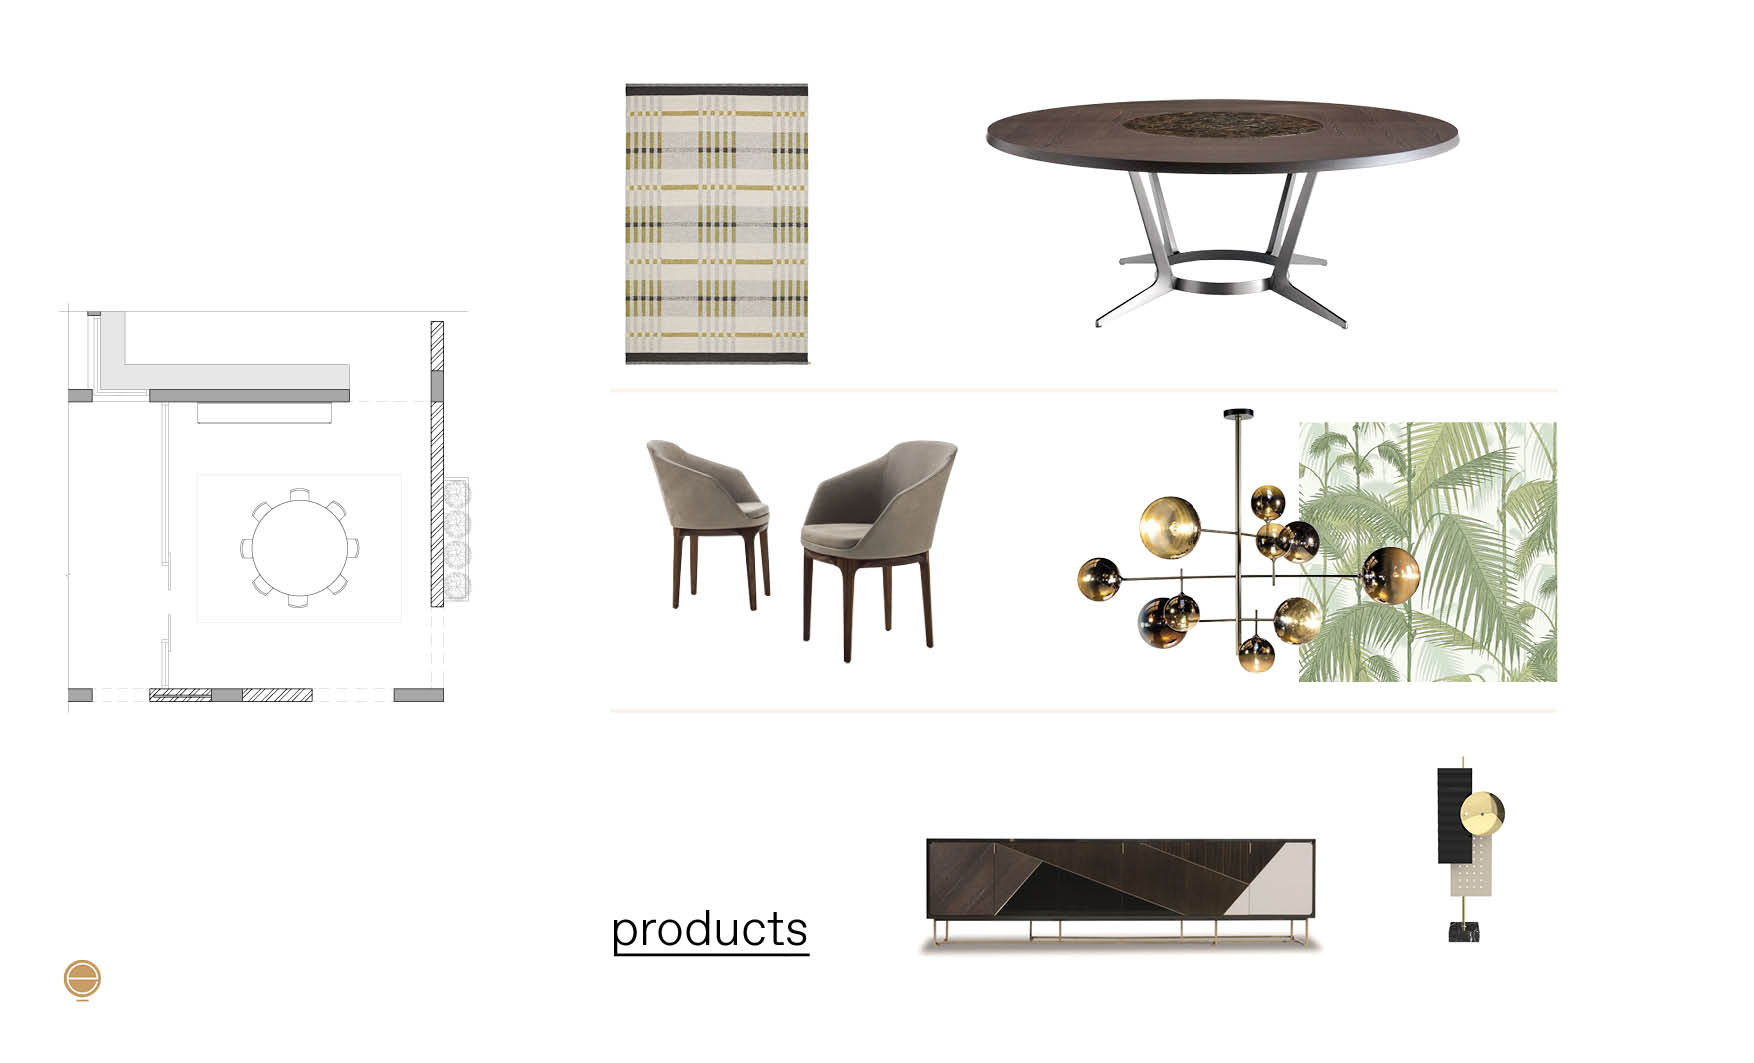 luxury dining room furniture composition made by Esperiri